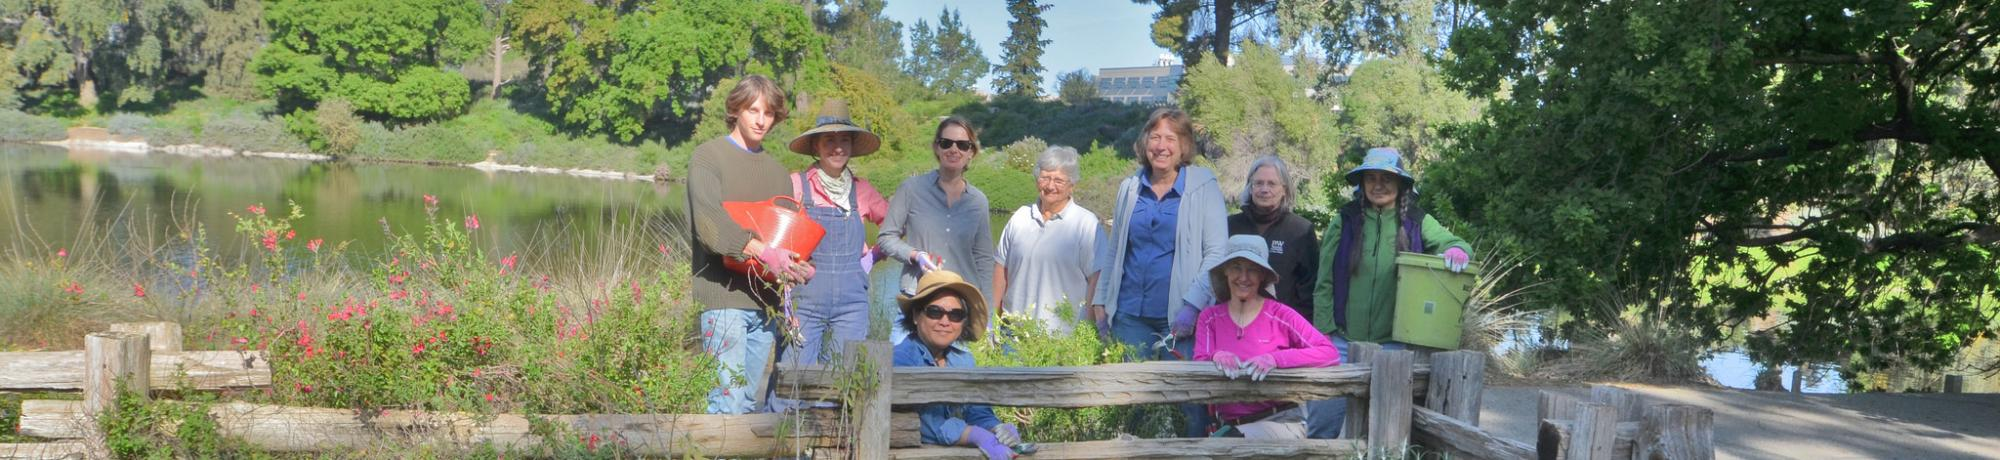 Image of UC Davis Arboretum and Public Garden volunteers gardening in the Arboretum.